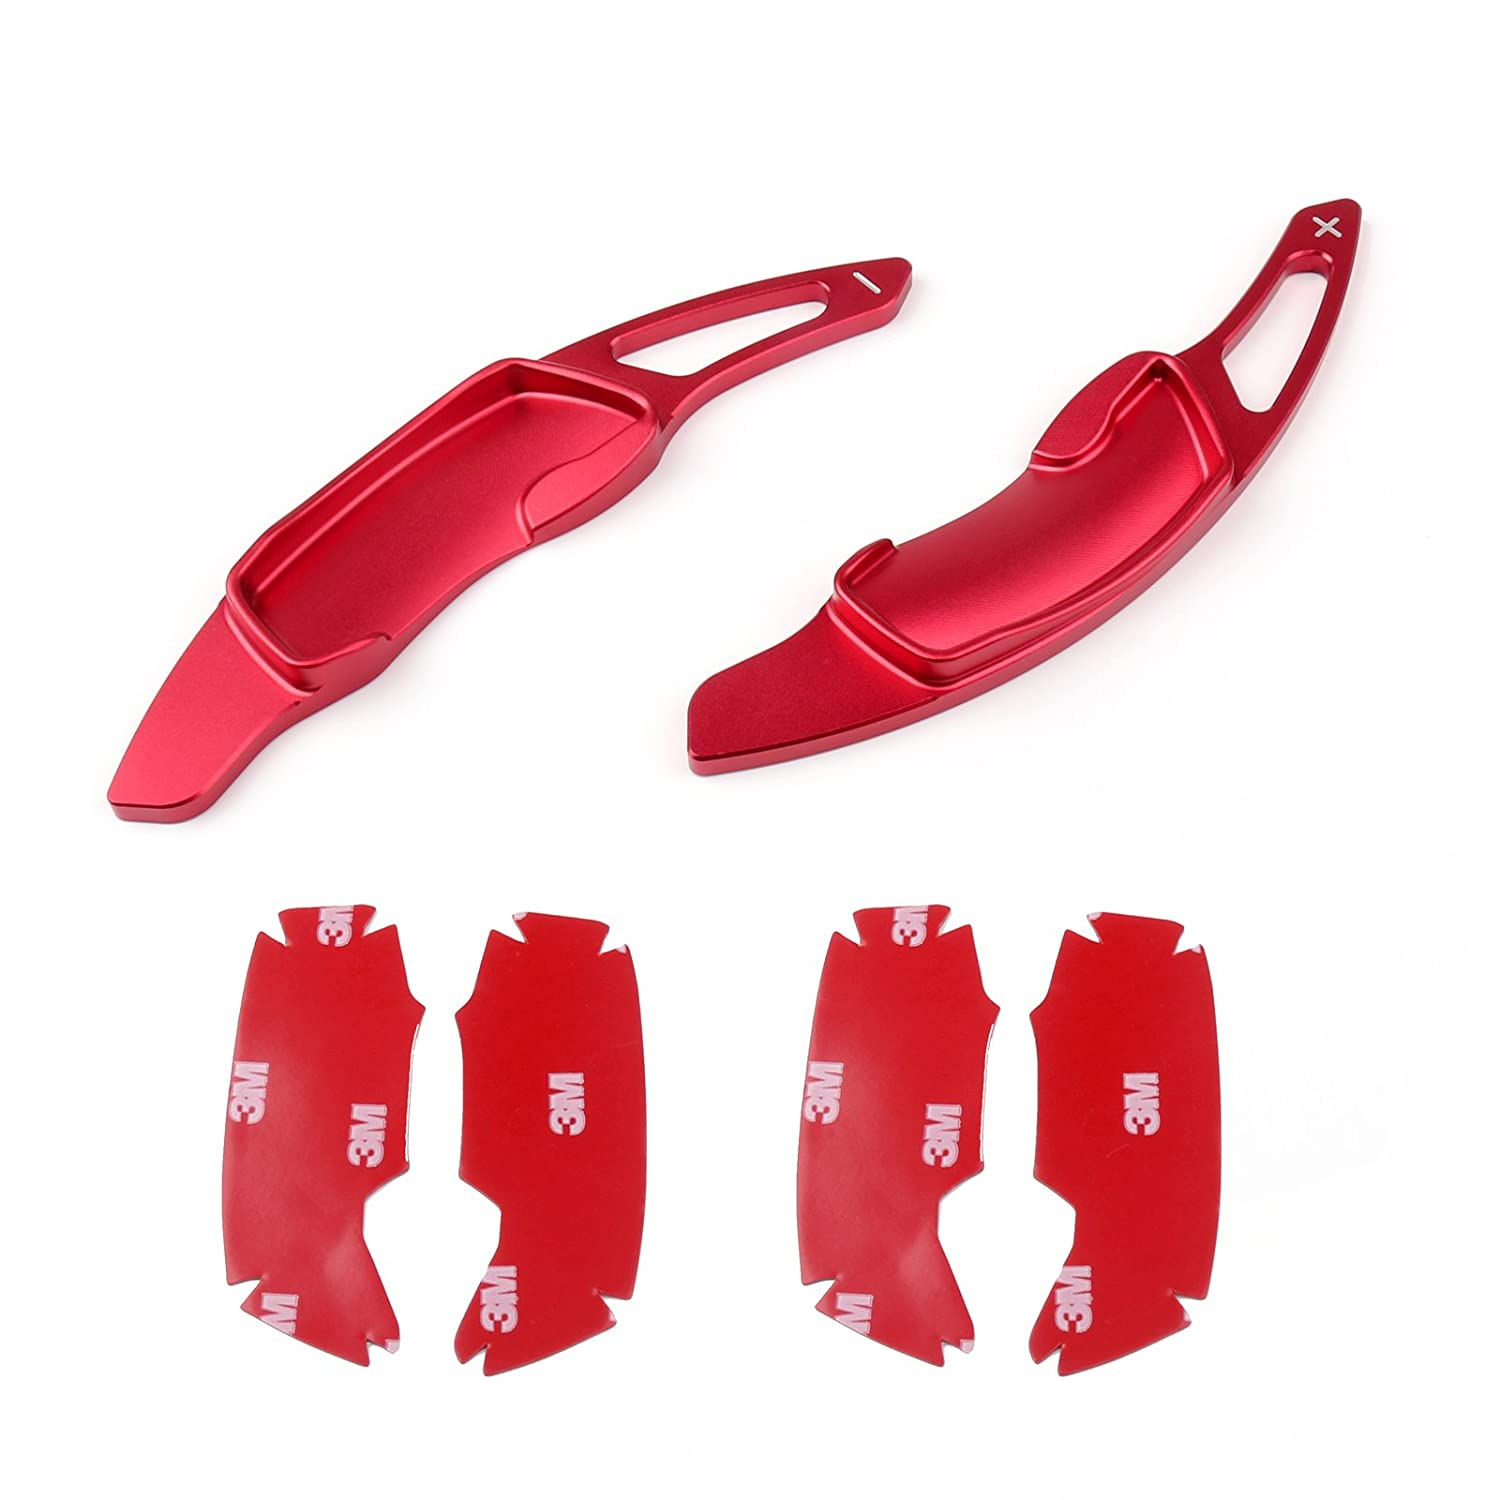 Areyourshop 2X Aluminum Steering Wheel DGS Trim Extension For Subaru BRZ WRX Forester Red